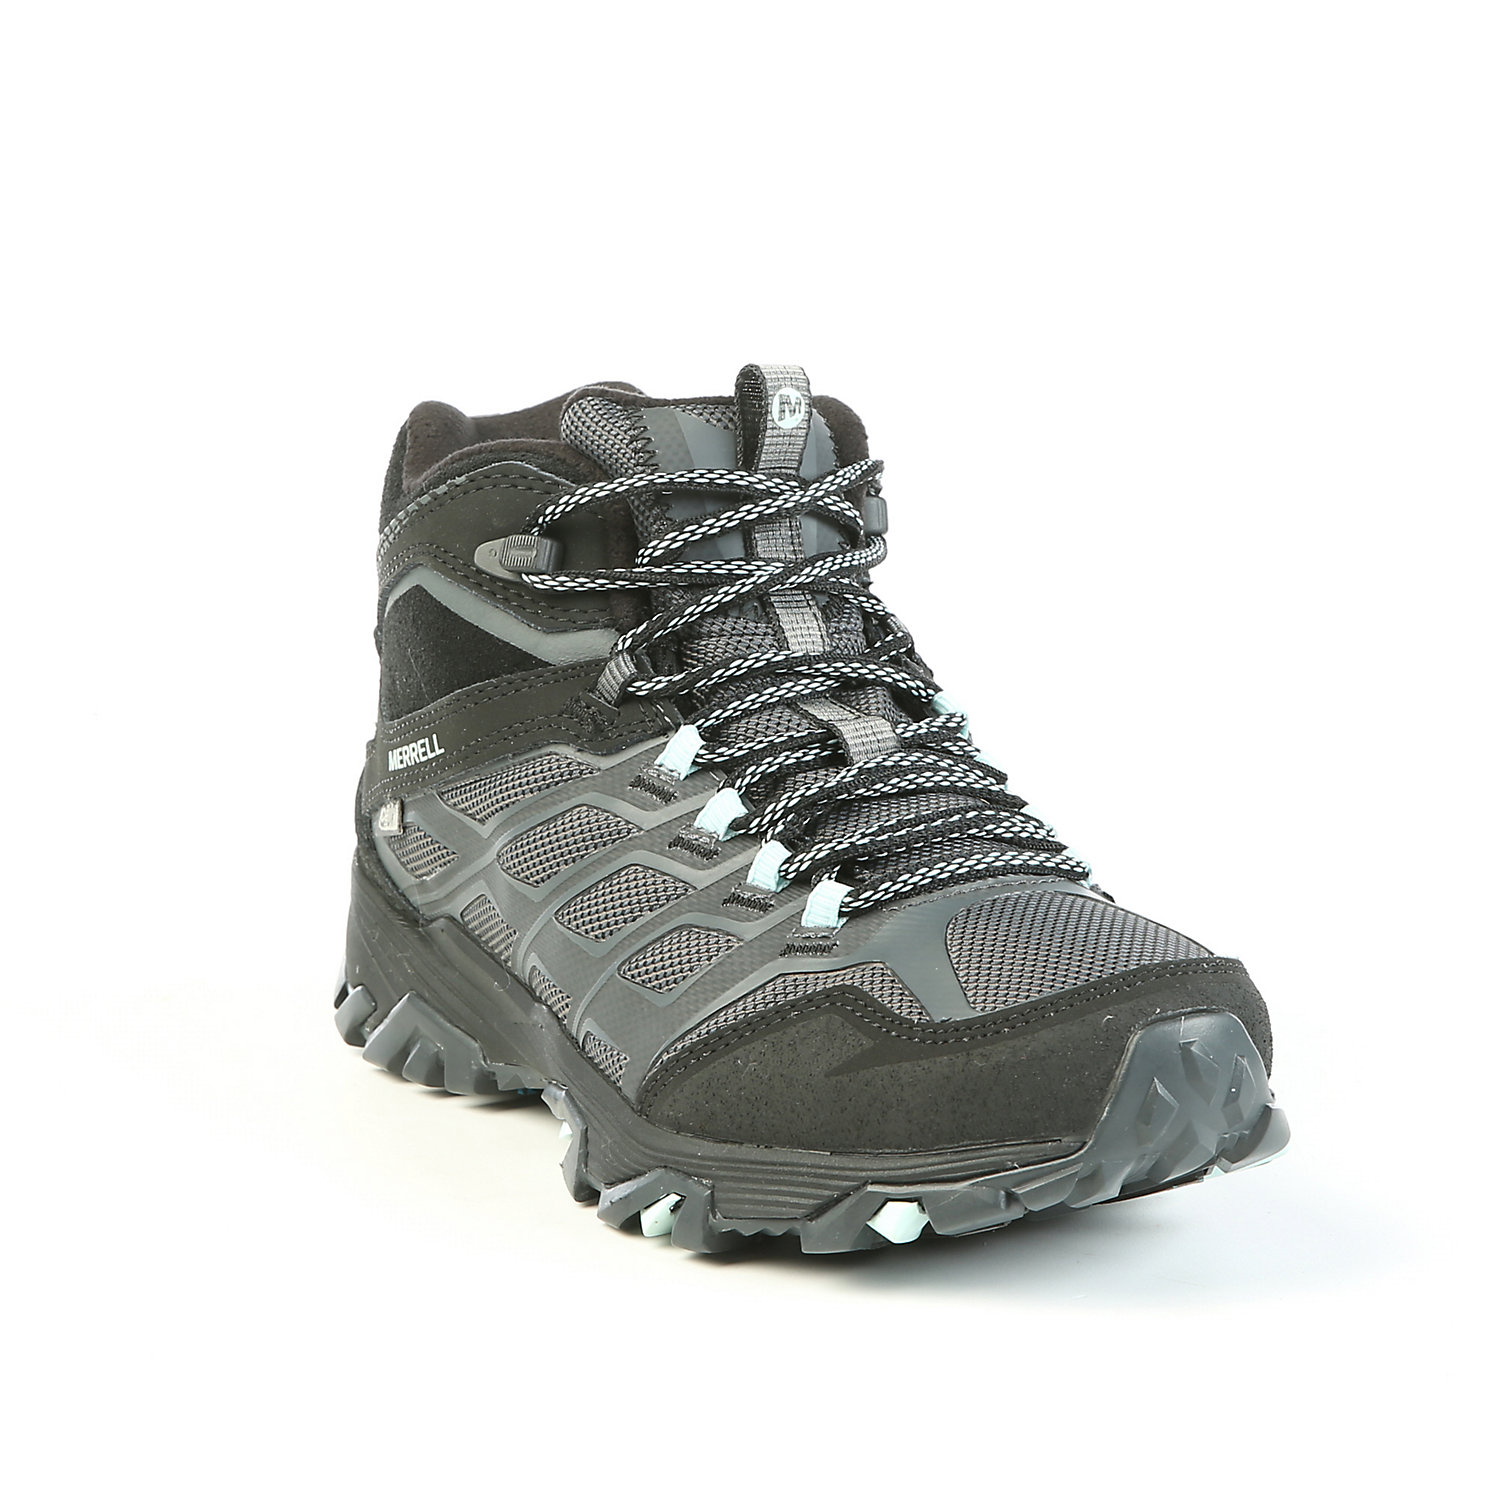 Thermo High Rise Hiking Boots Merrell Womens Moab FST Ice